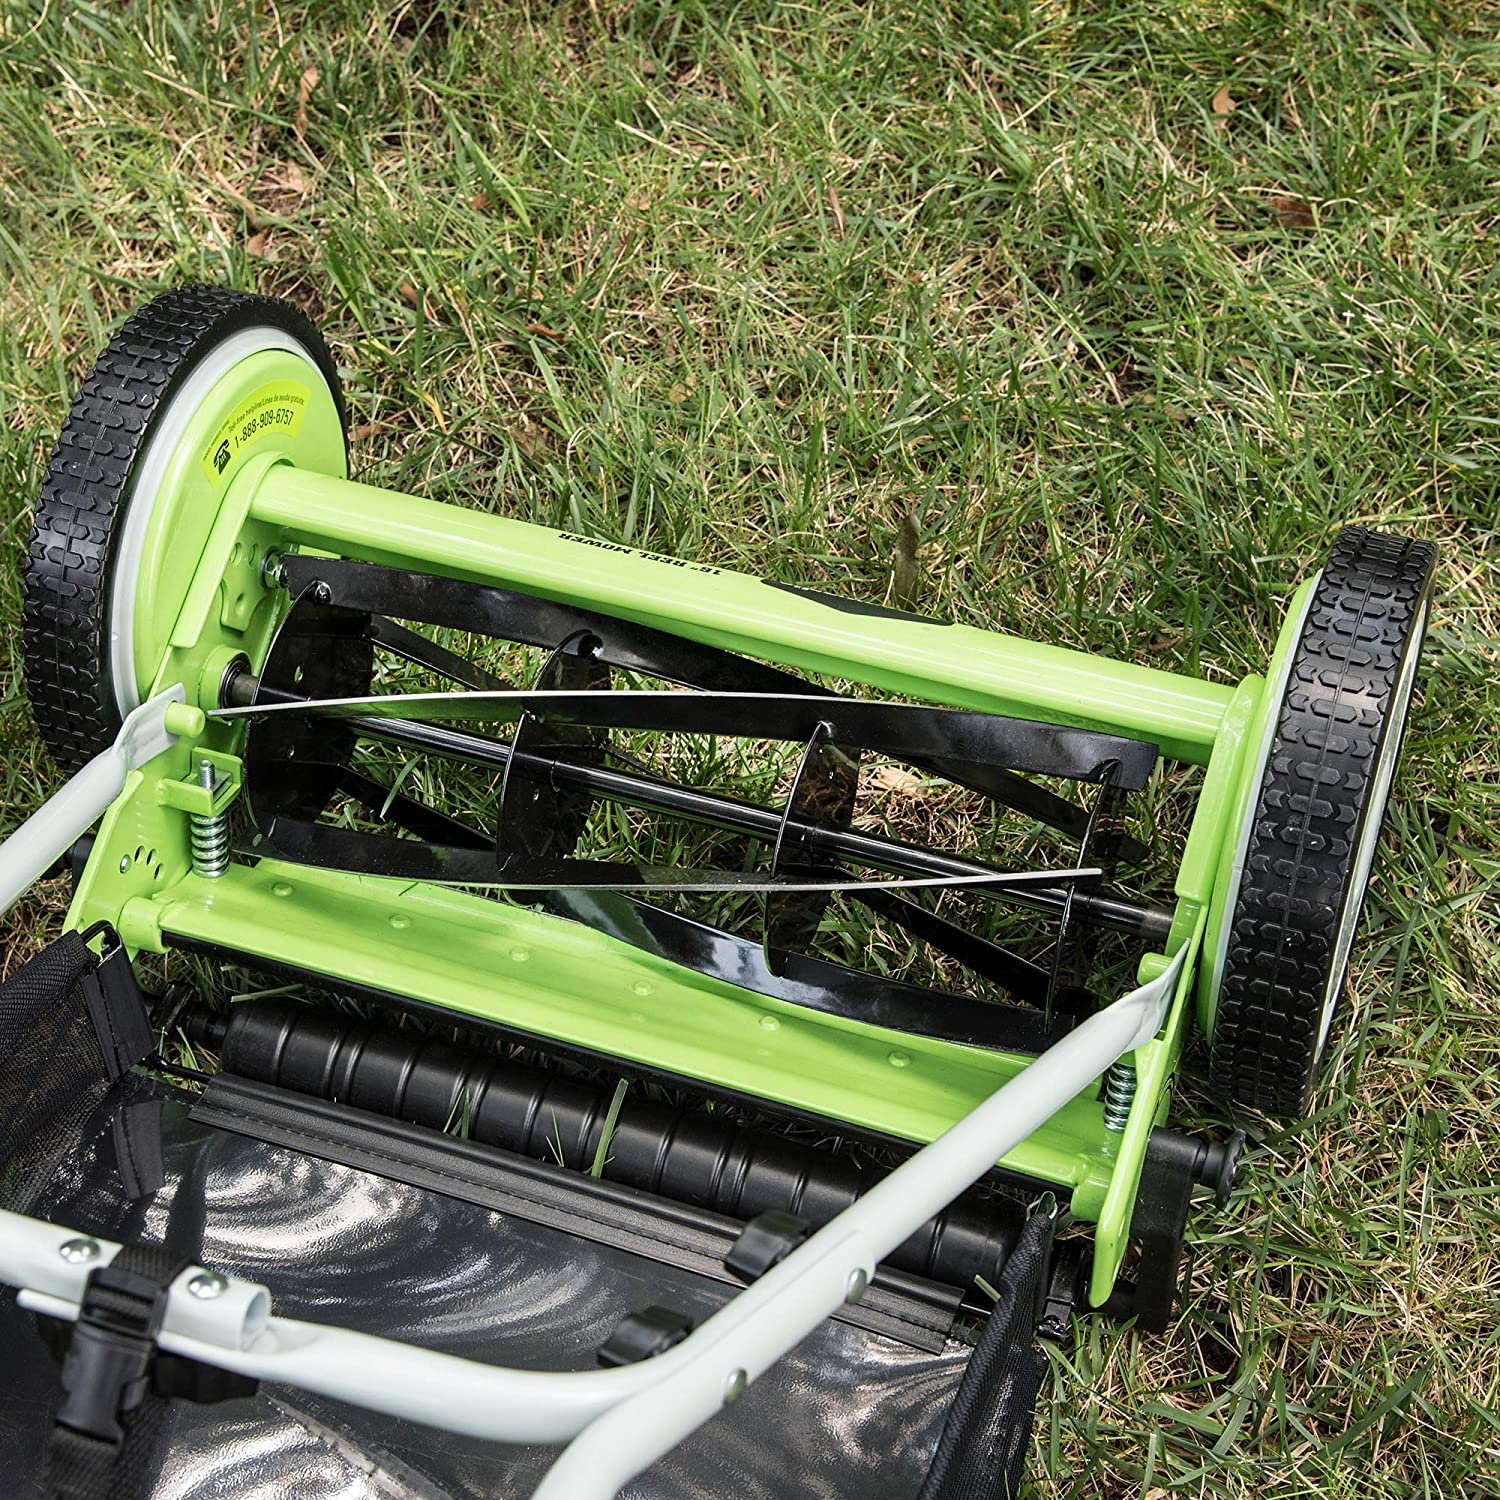 Greenworks 25072 Push Reel Lawn Mower review